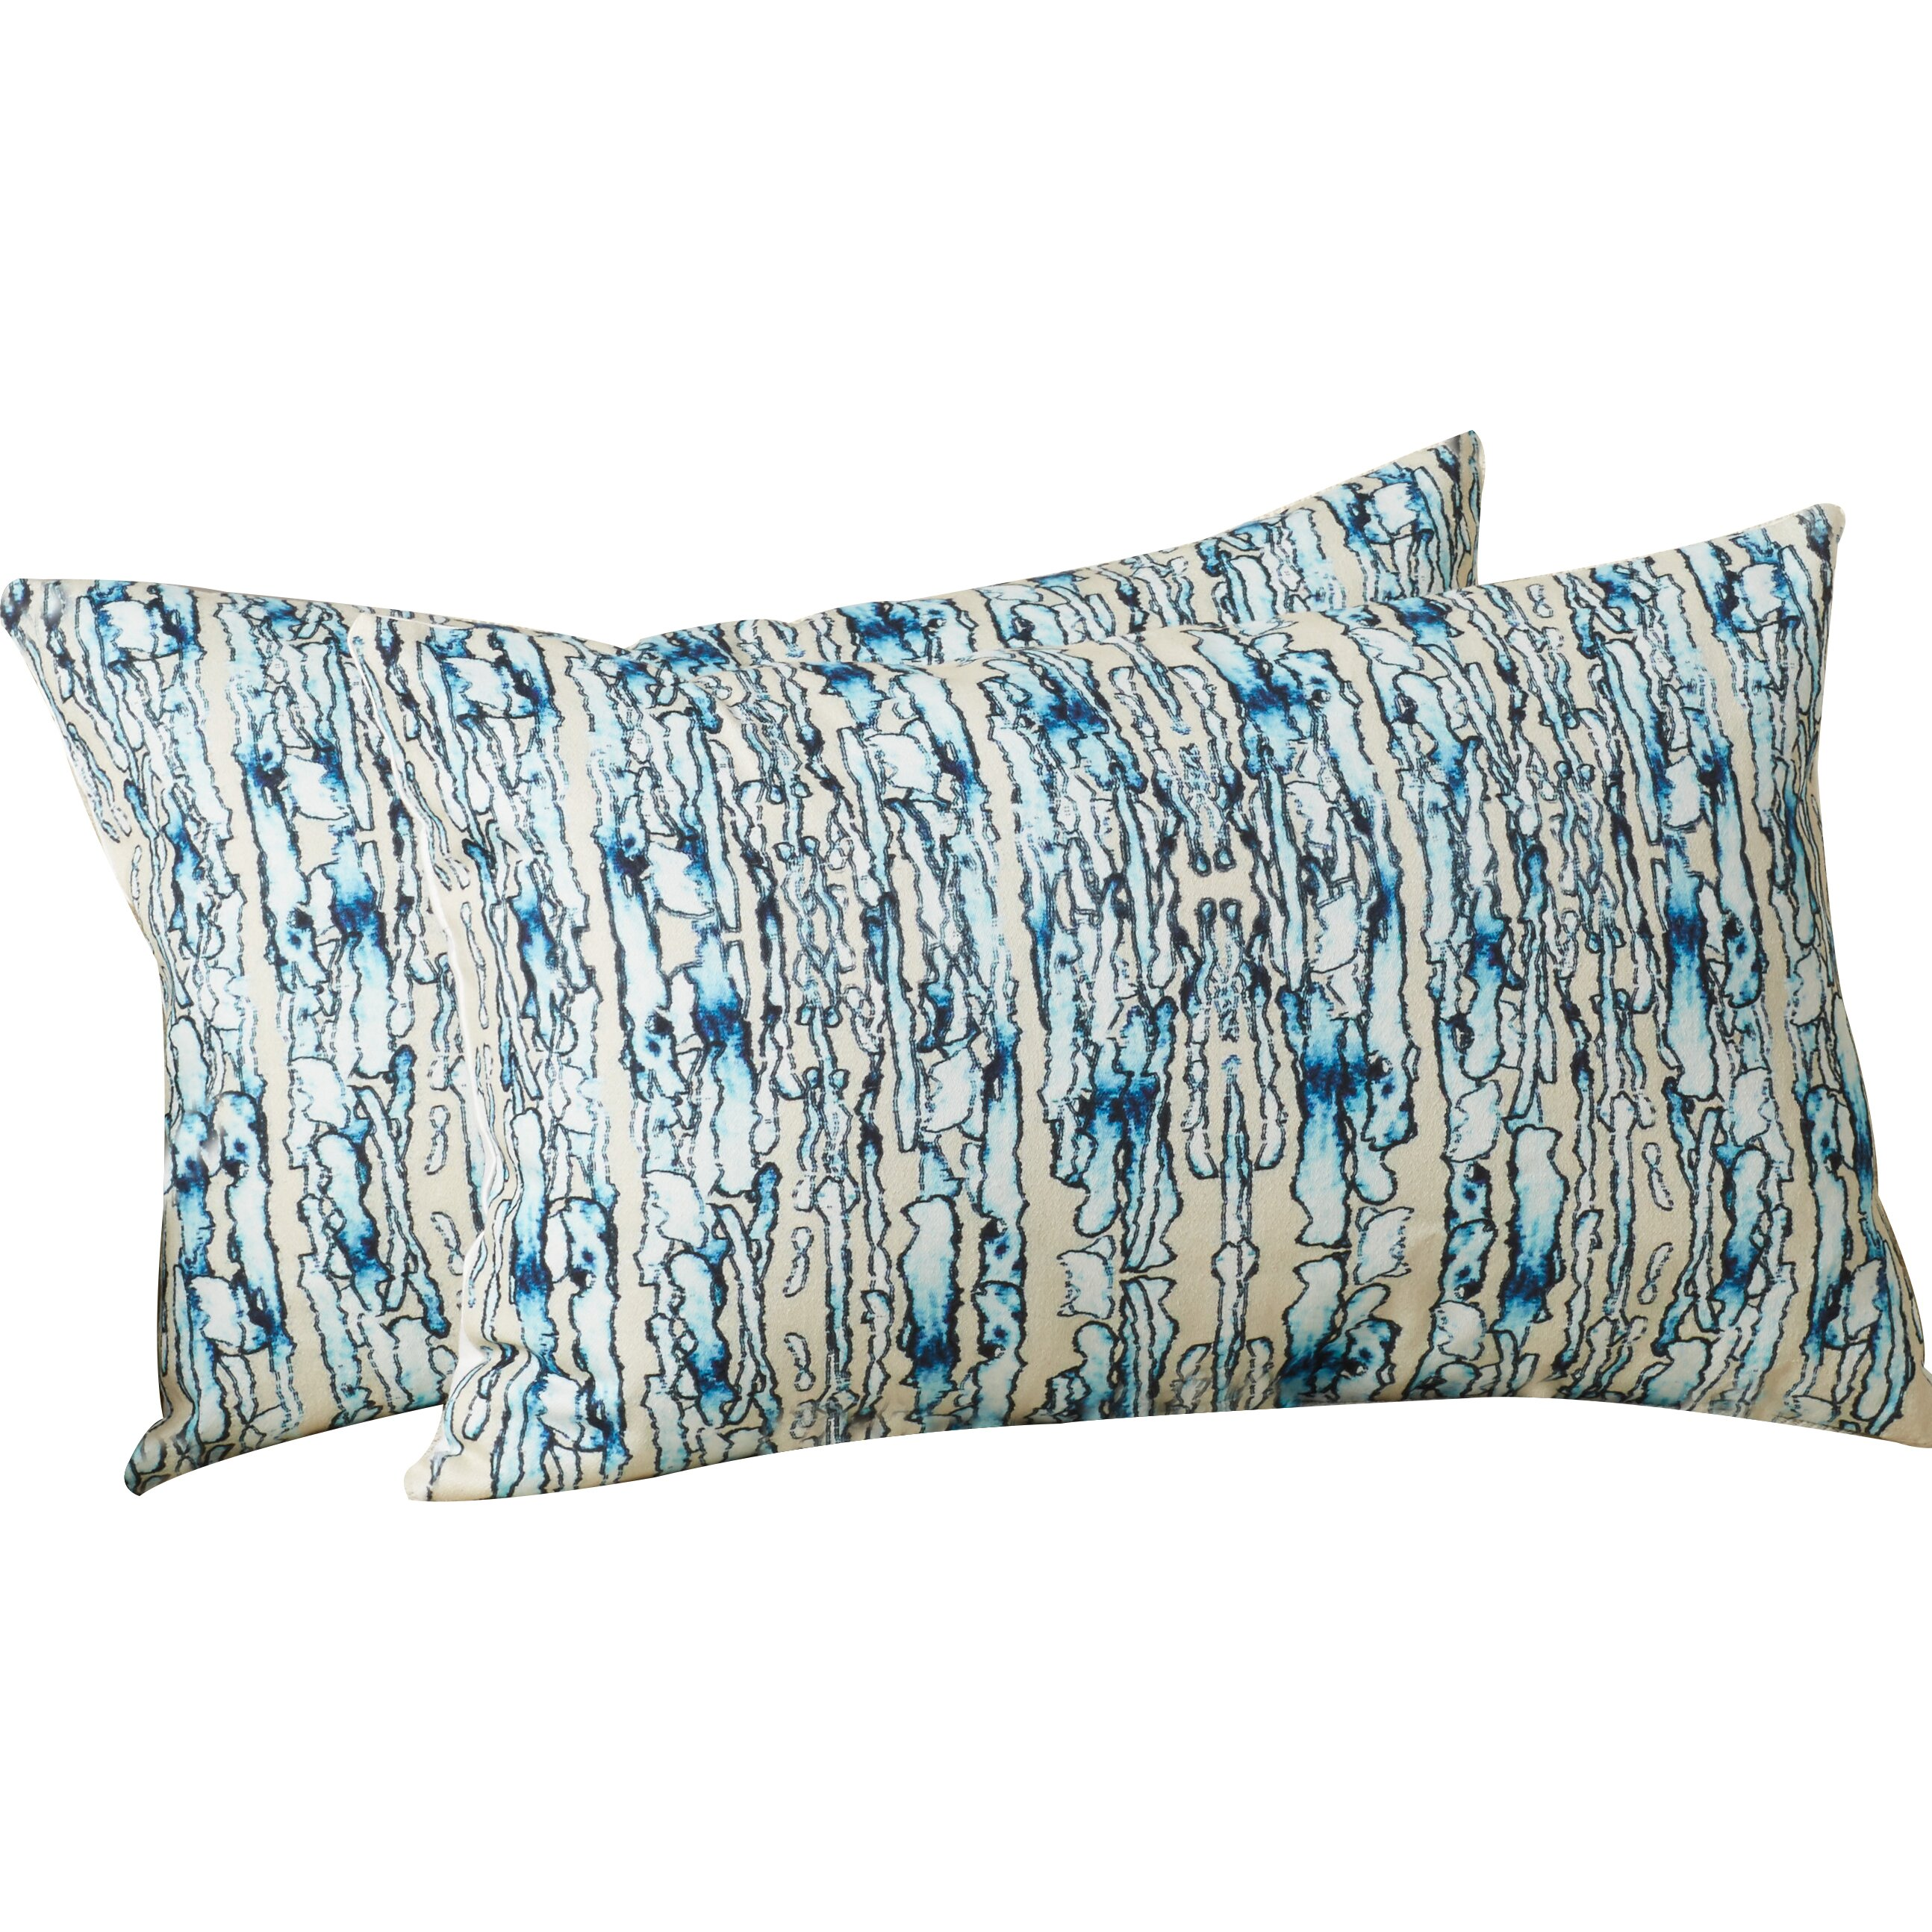 Max Studio Home Decorative Pillows : Brayden Studio Currents Decorative Throw Pillow & Reviews Wayfair